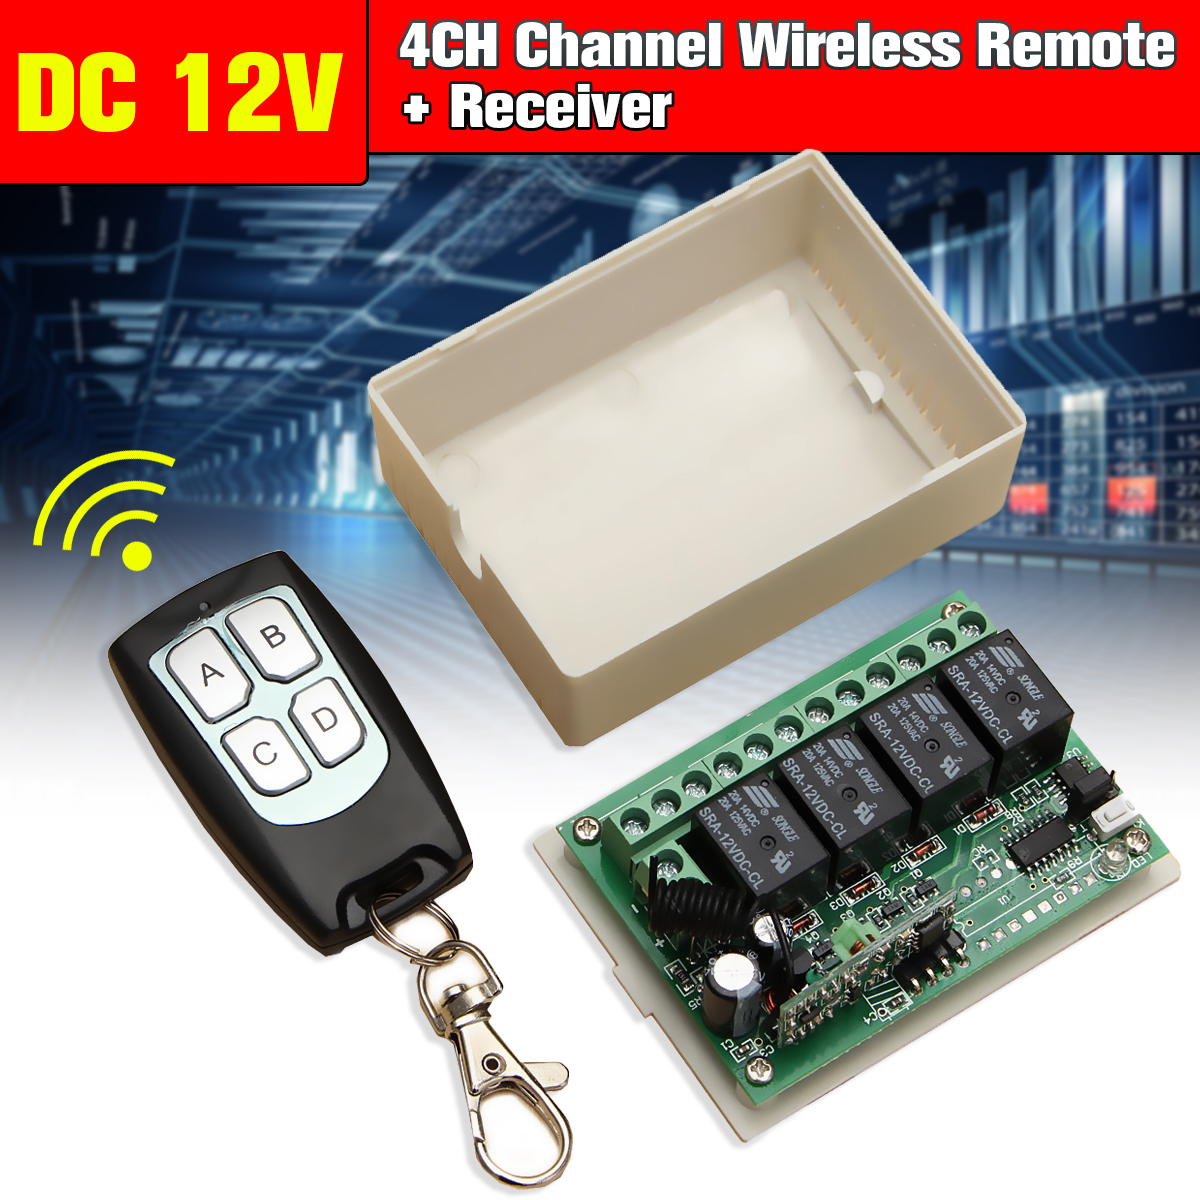 New Arrival for DC 12V 4CH Wireless Remote Control Small Channel Radio Switch 433mhz Transmitter Receiver 200m High Sensitivity стоимость